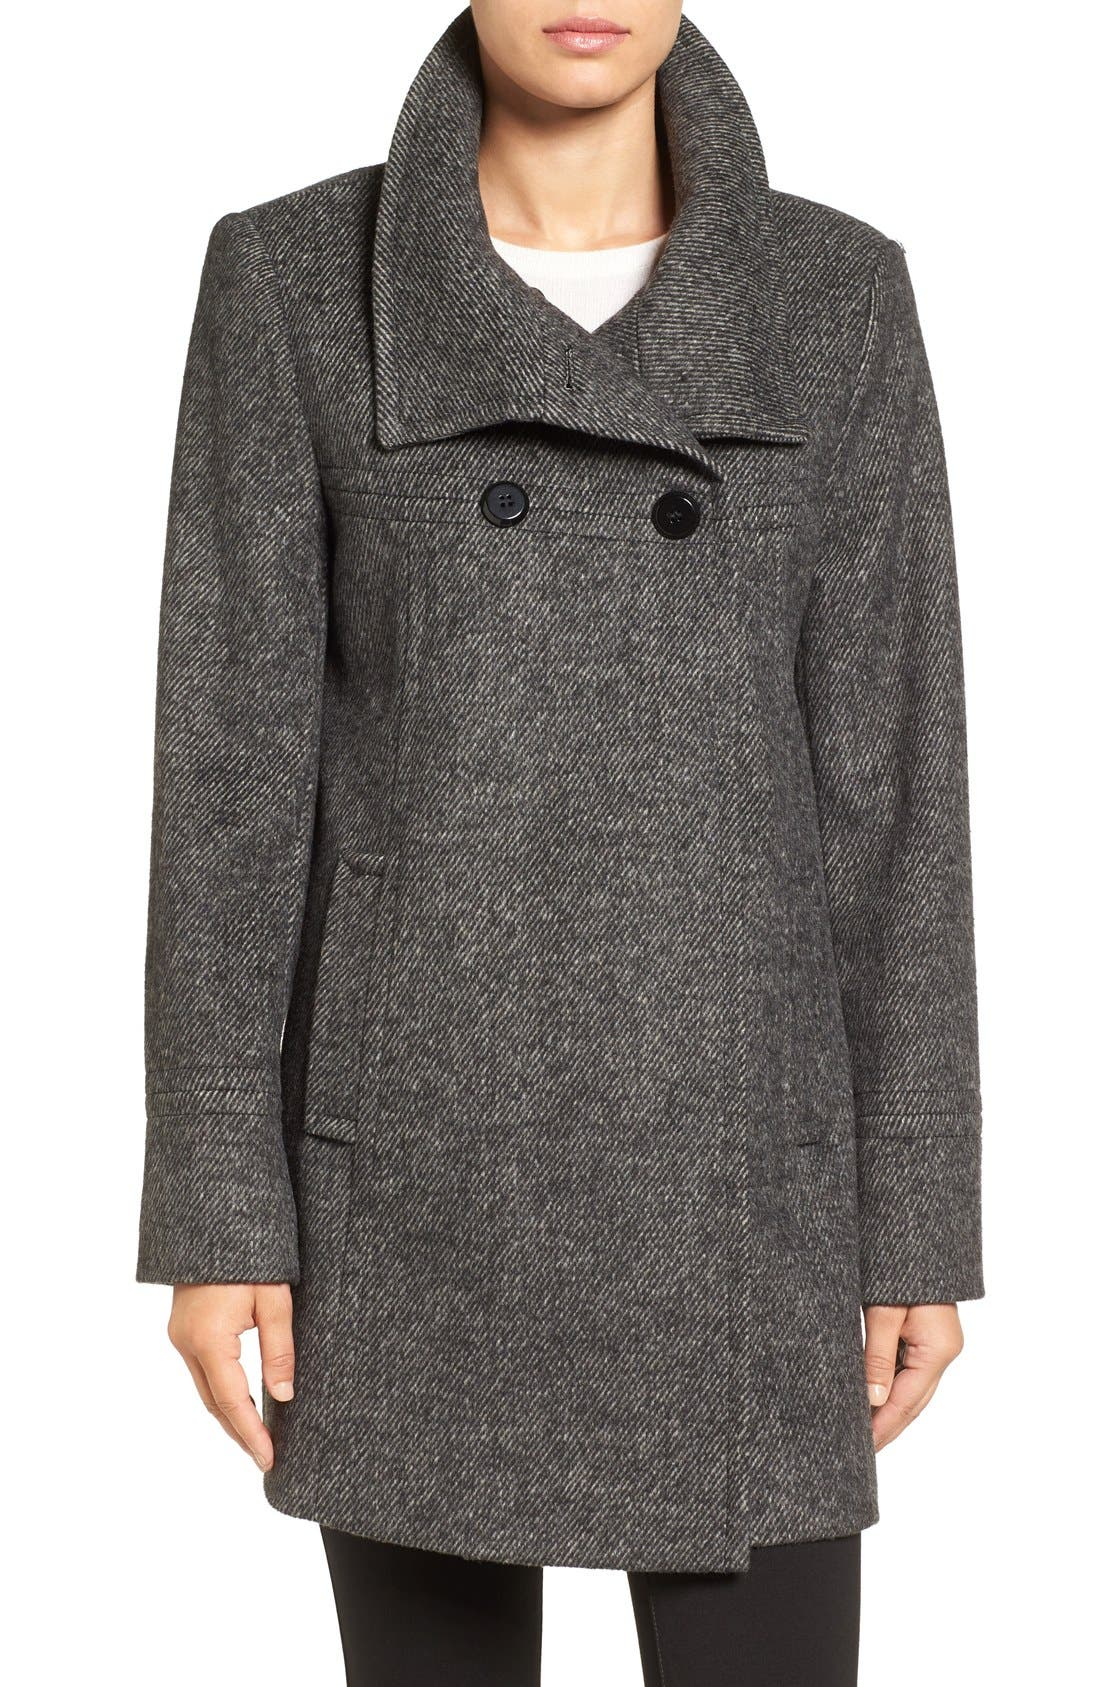 Double Breasted Swing Coat,                         Main,                         color, Black/ Charcoal